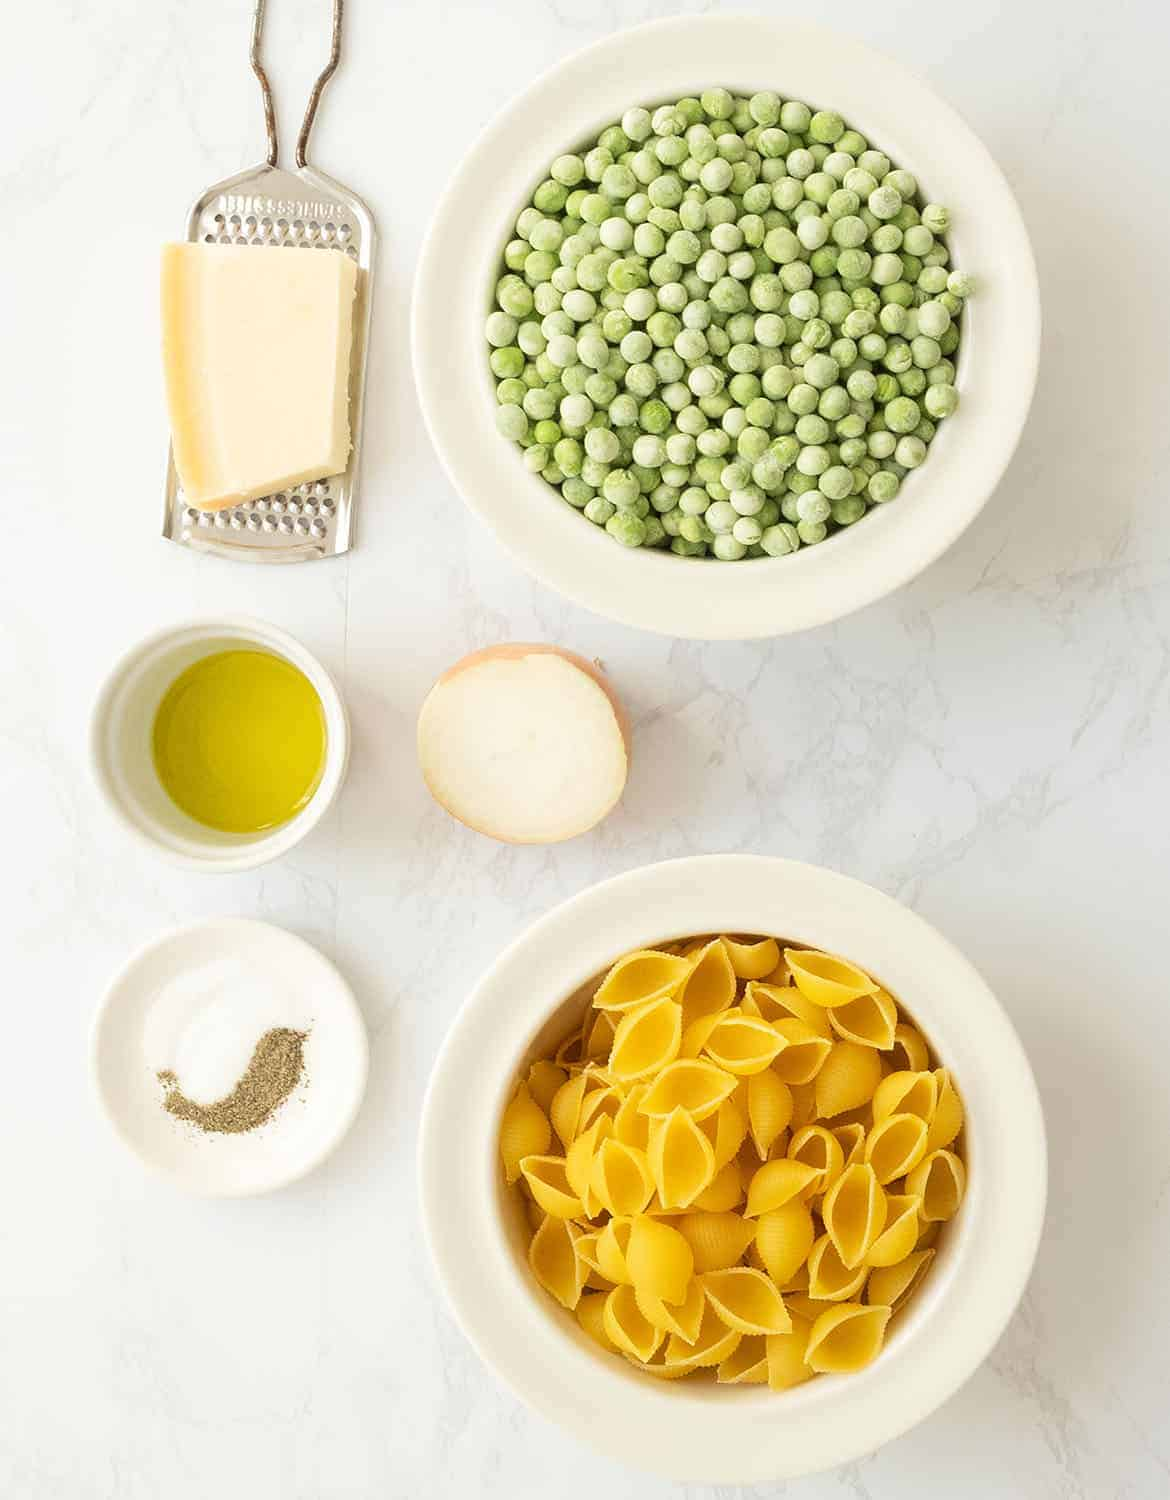 The ingredients to make this pasta with peas are arranged on a white marble table.